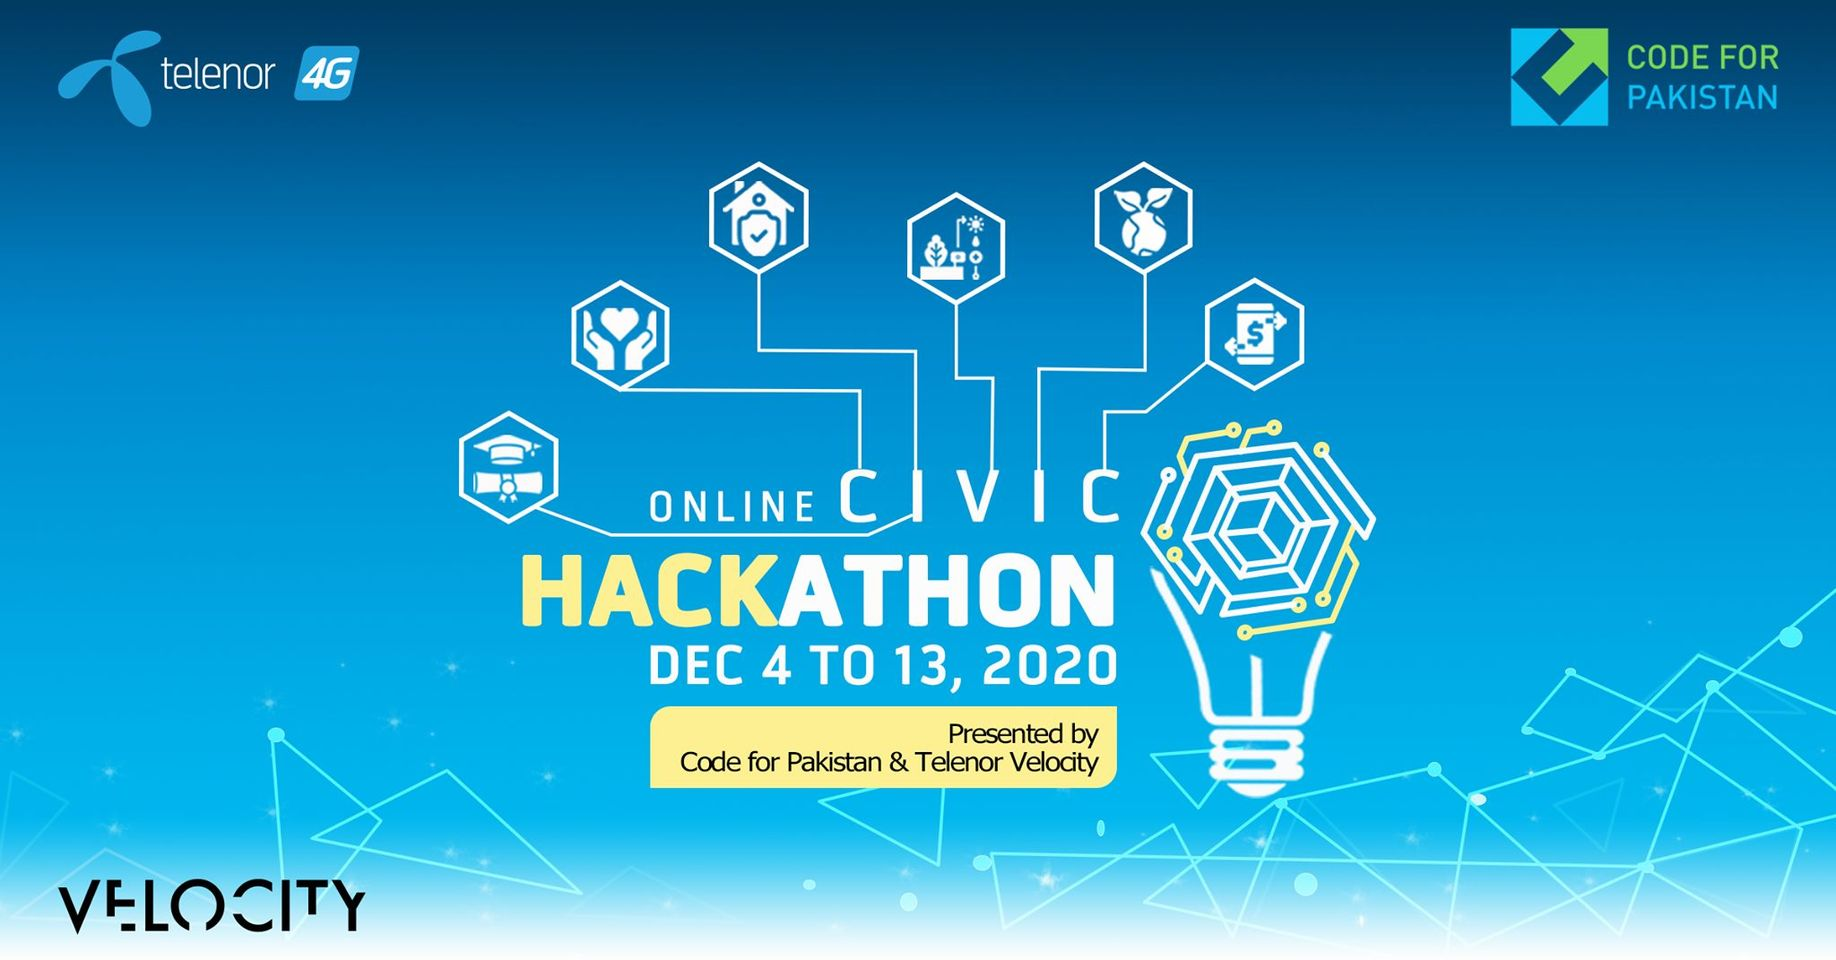 The Civic Hackathon 2020, presented by Code for Pakistan and Telenor Velocity, will take place ONLINE, Dec 4-13! You will have the opportunity to work on impactful solutions